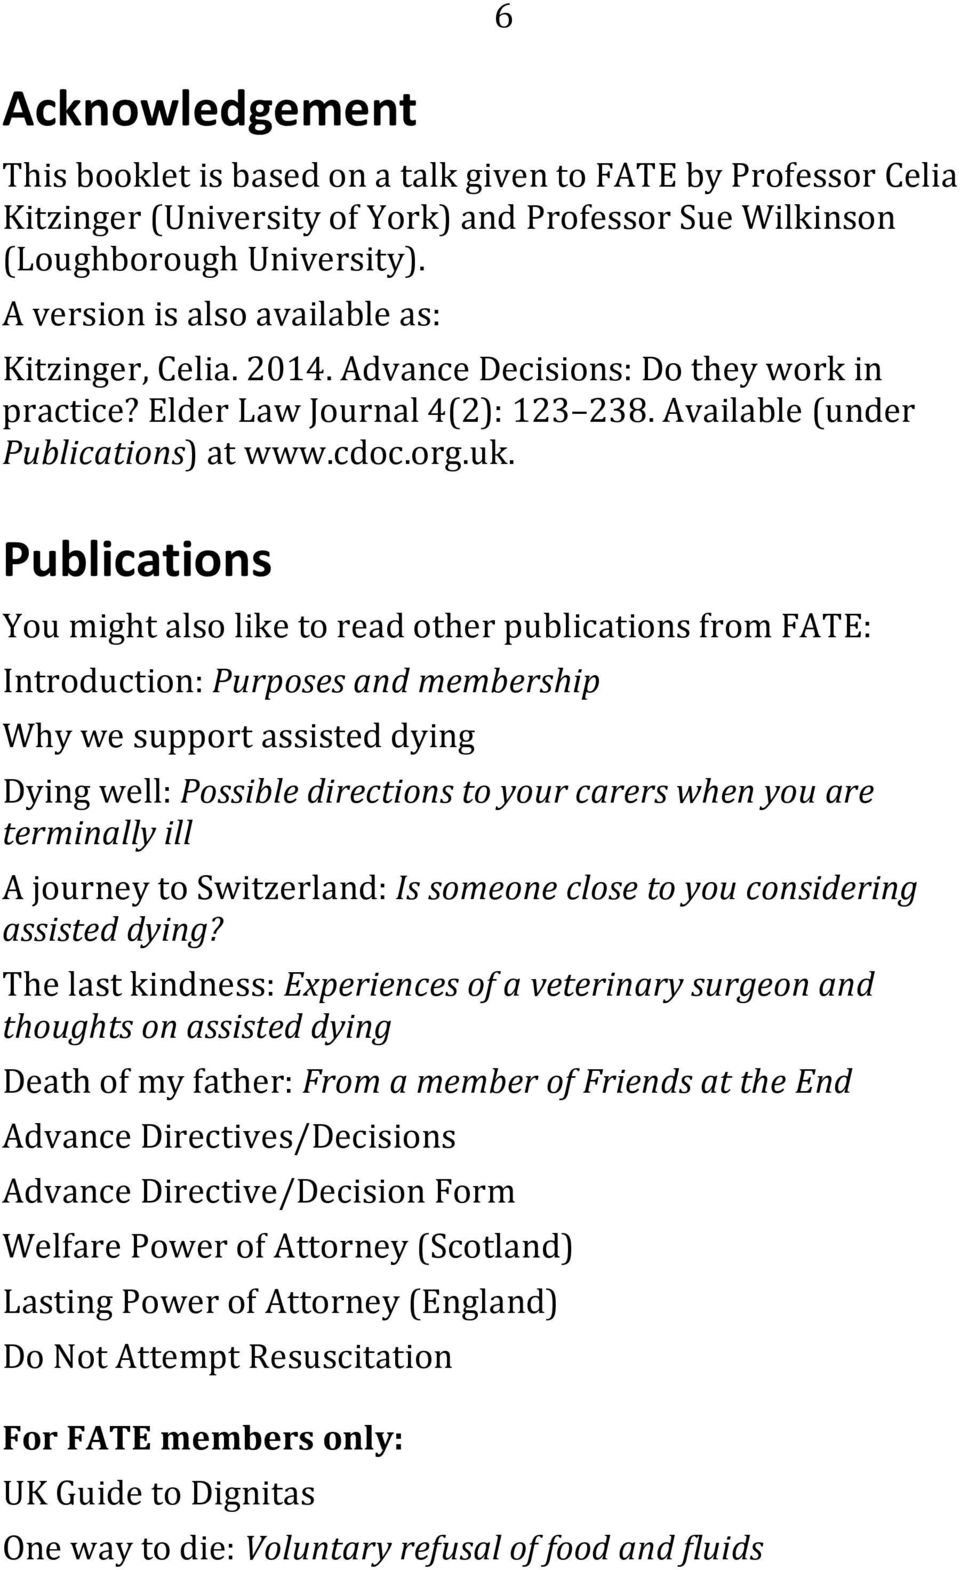 Publications You might also like to read other publications from FATE: Introduction: Purposes and membership Why we support assisted dying Dying well: Possible directions to your carers when you are